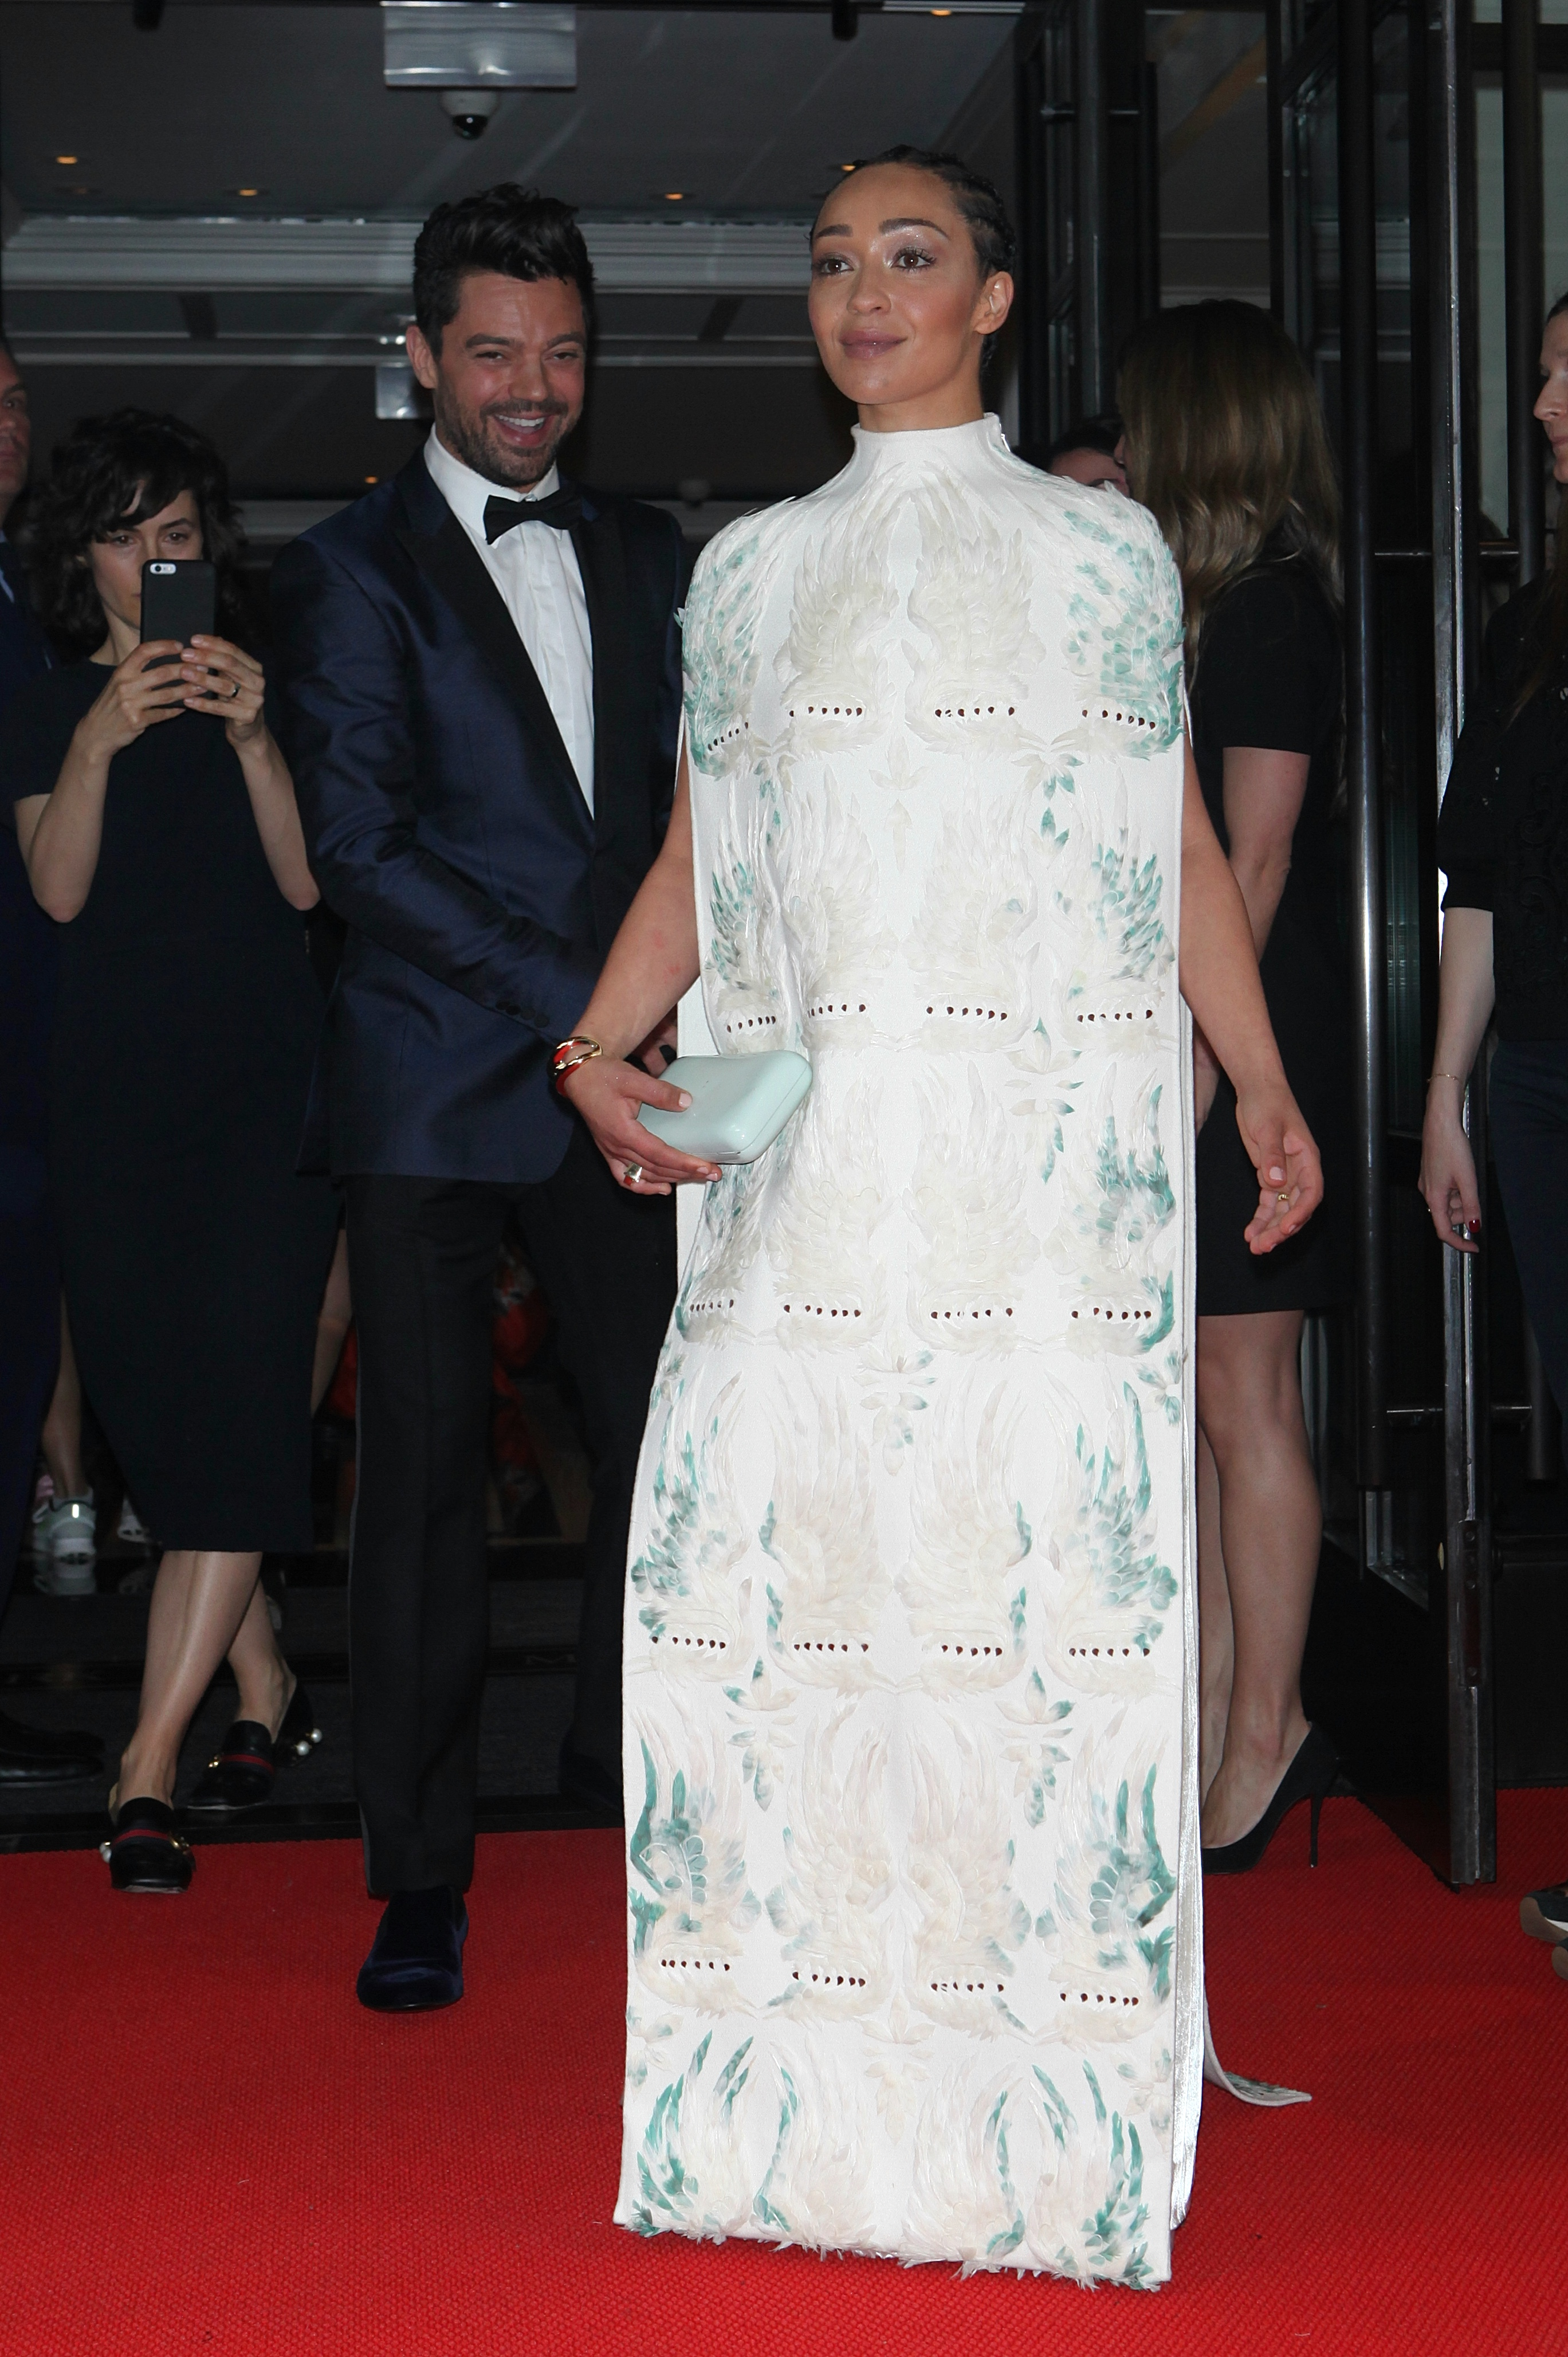 NEW YORK, NY - MAY 1: Ruth Negga and Dominic Cooper seen leaving The Mark Hotel to The Met Gala on May 1, 2017 in New York City. Credit: Diego Corredor/MediaPunch/IPX